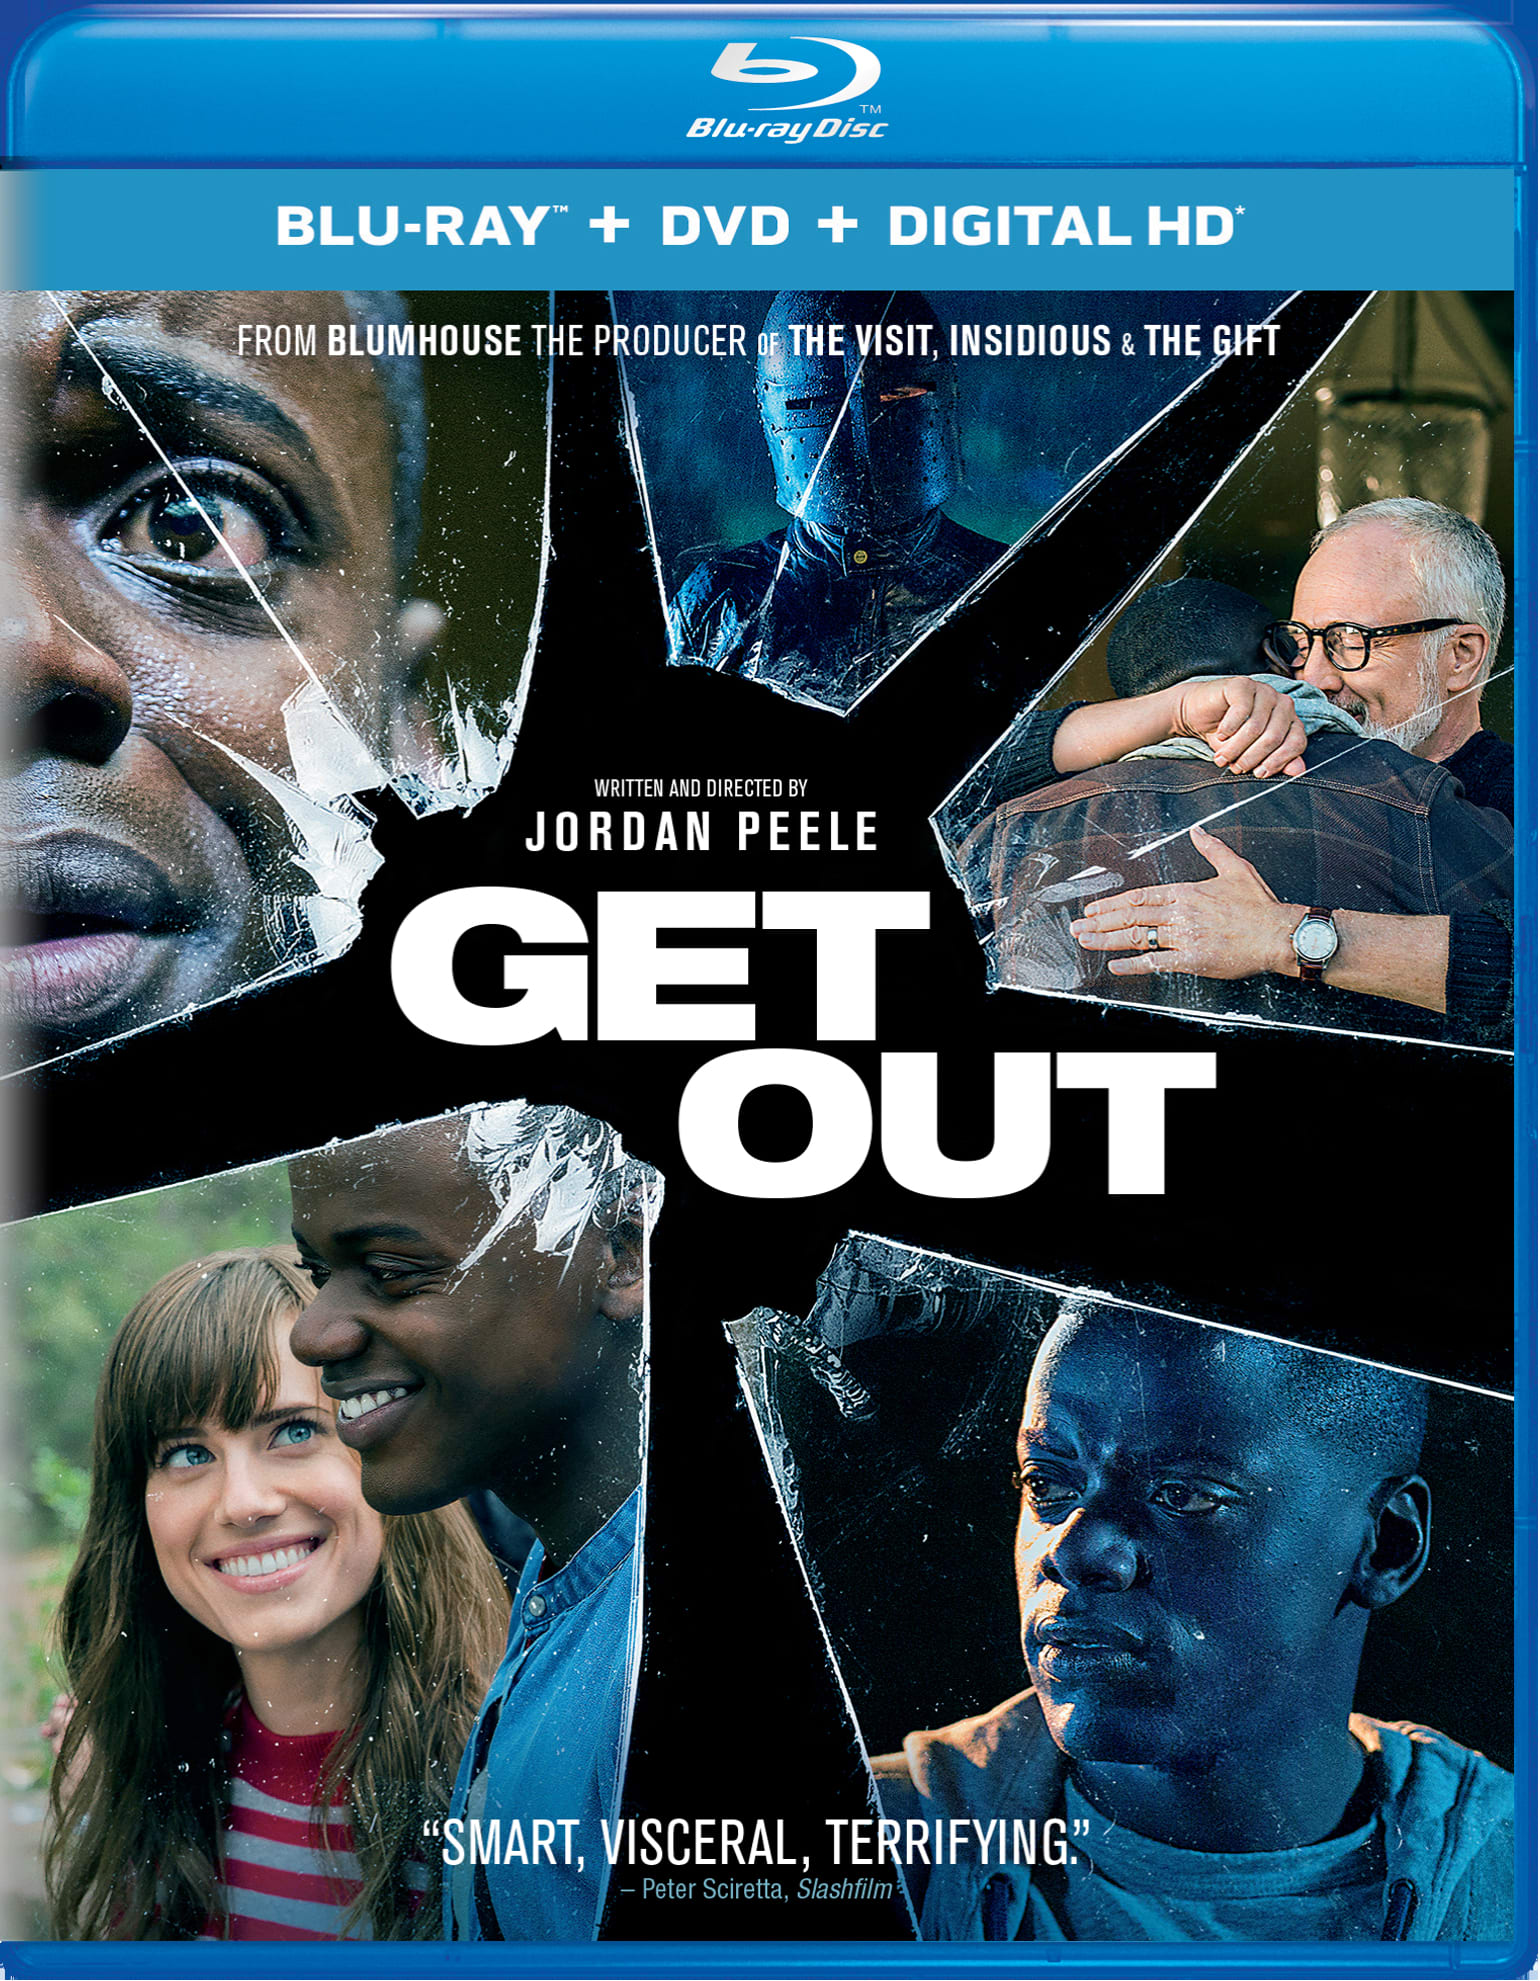 Get Out (DVD + Digital) [Blu-ray]